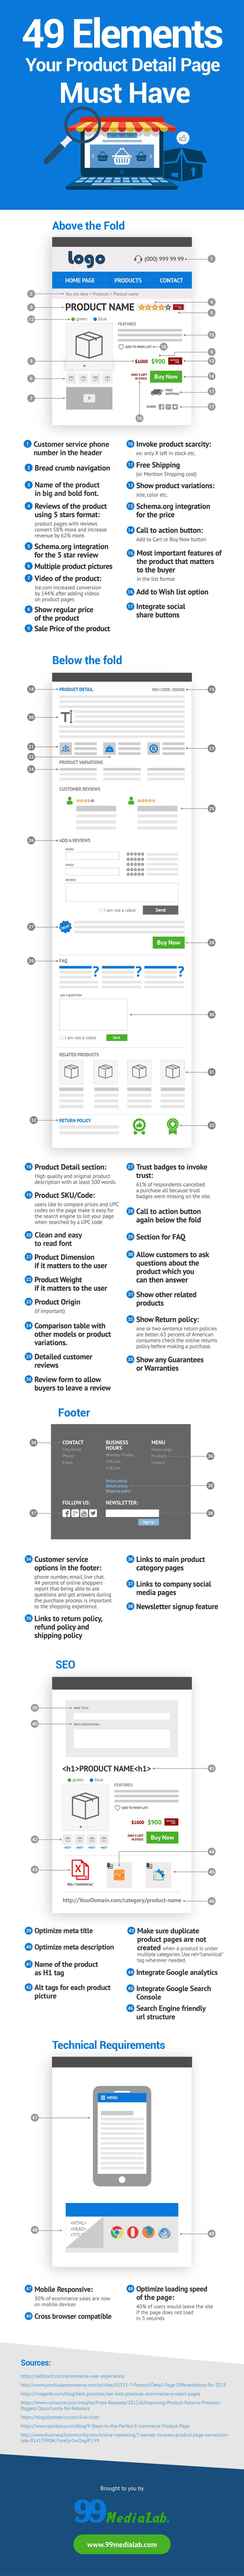 Elements of the perfect product detail page